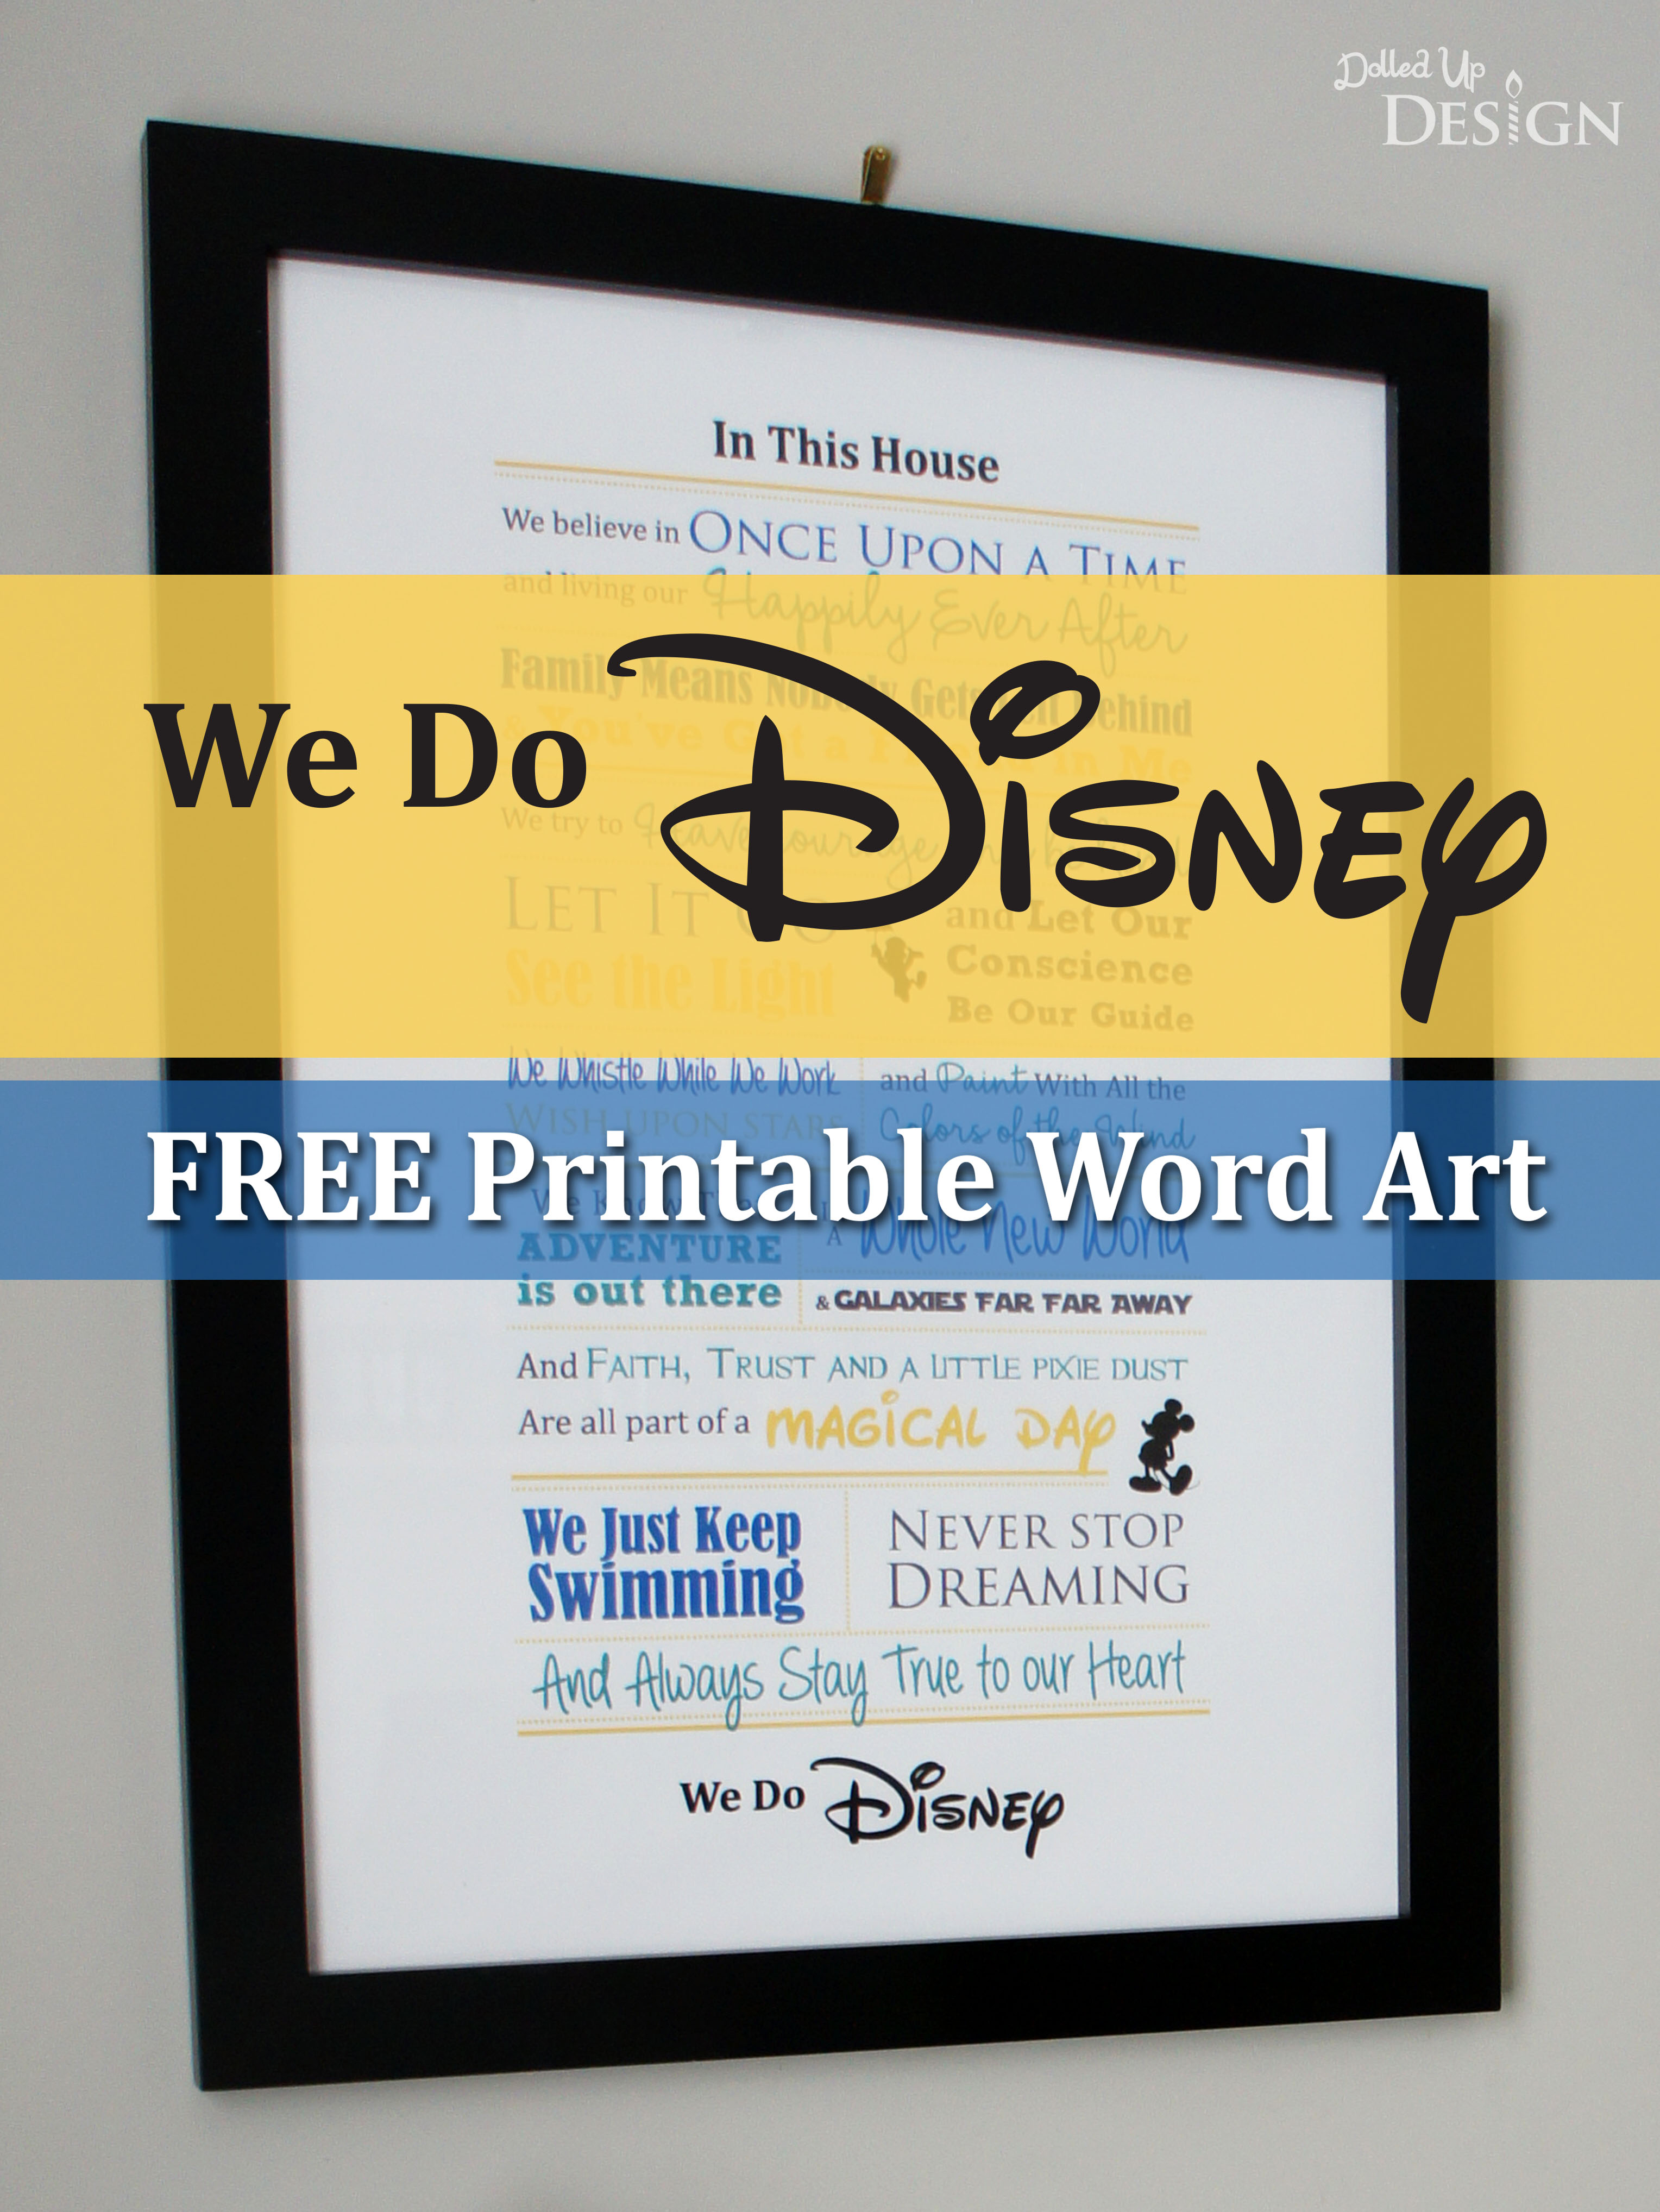 graphic about Printable Word Art named We Do Disney Cost-free Printable Phrase Artwork